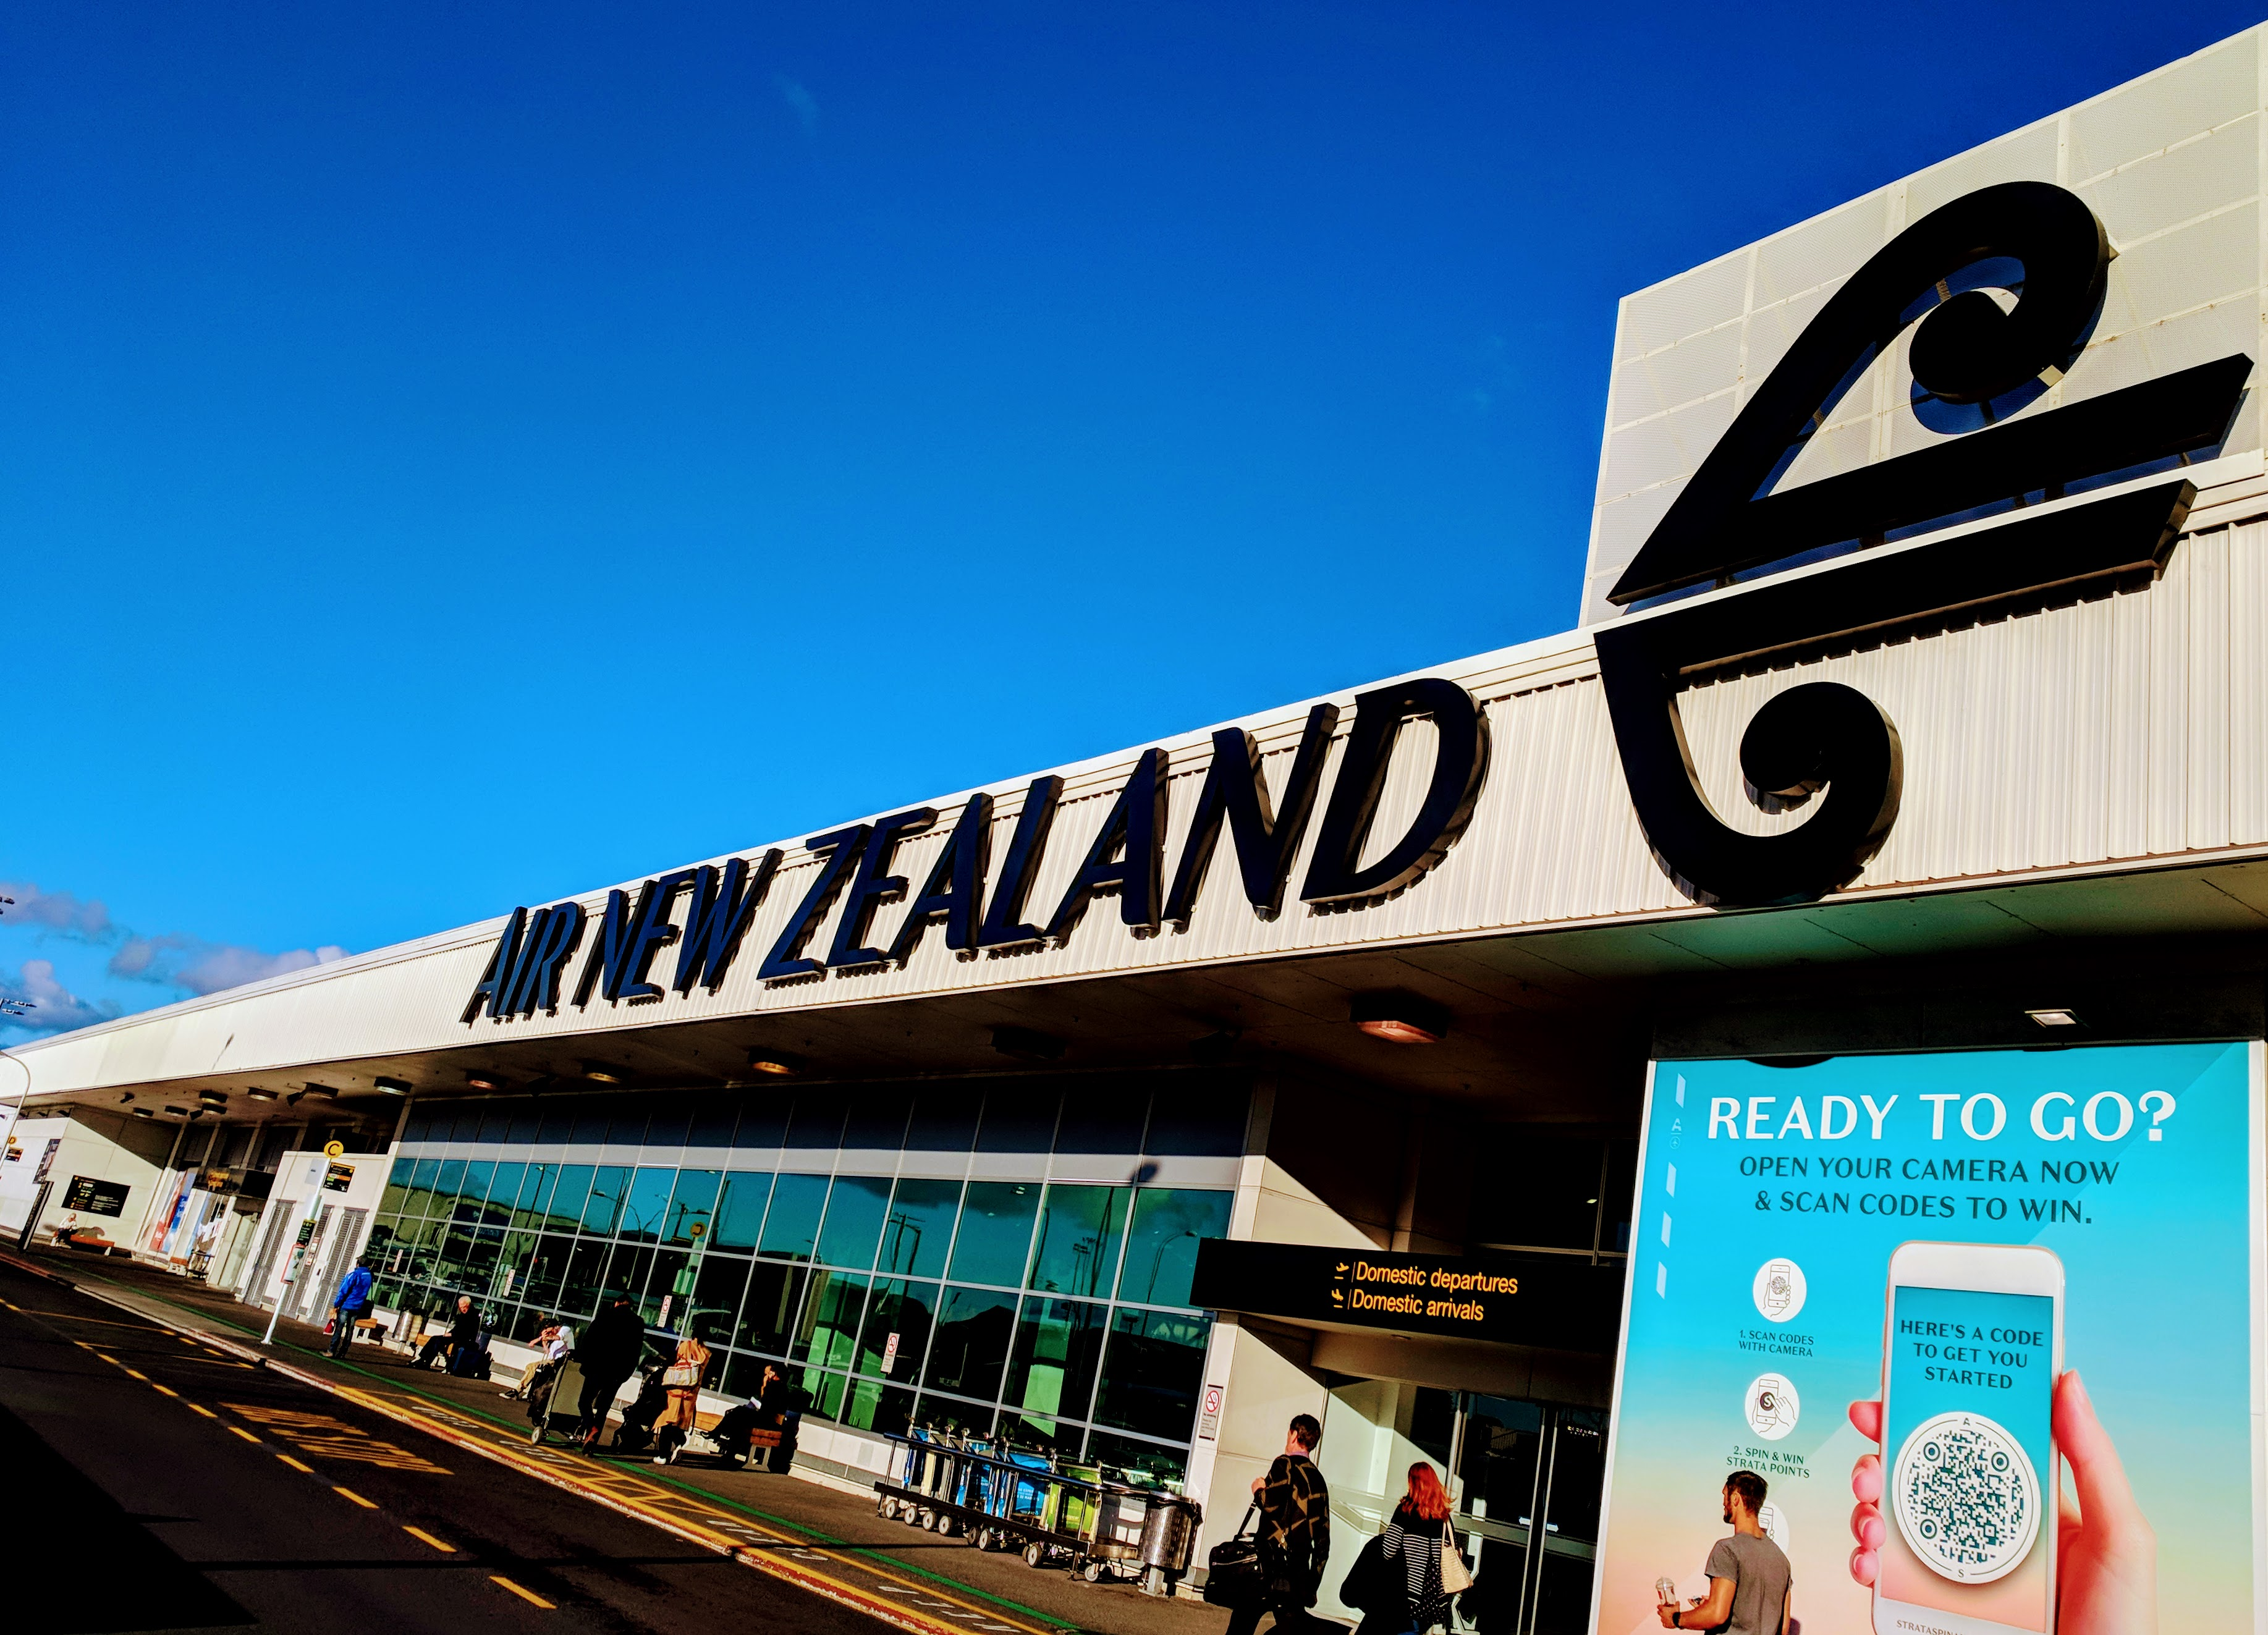 Air NZ domestic terminal entrance at Auckland Airport